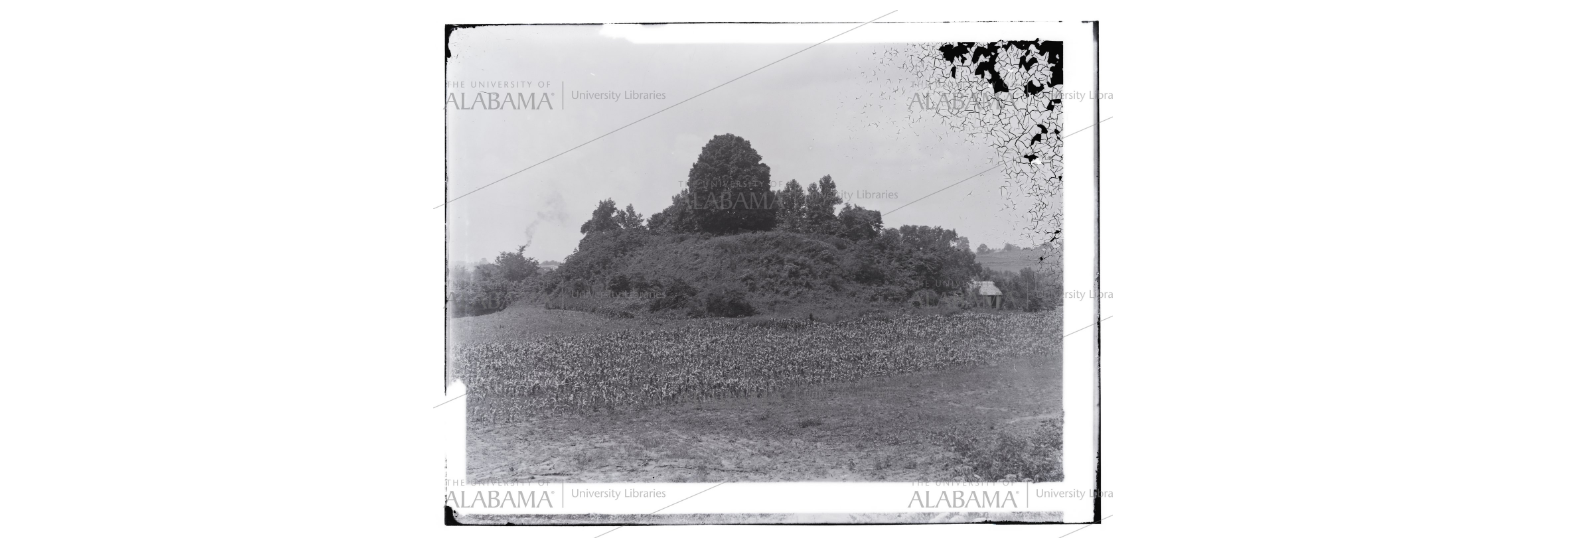 One of the mounds at Moundville, Alabama. Picture from 1902.